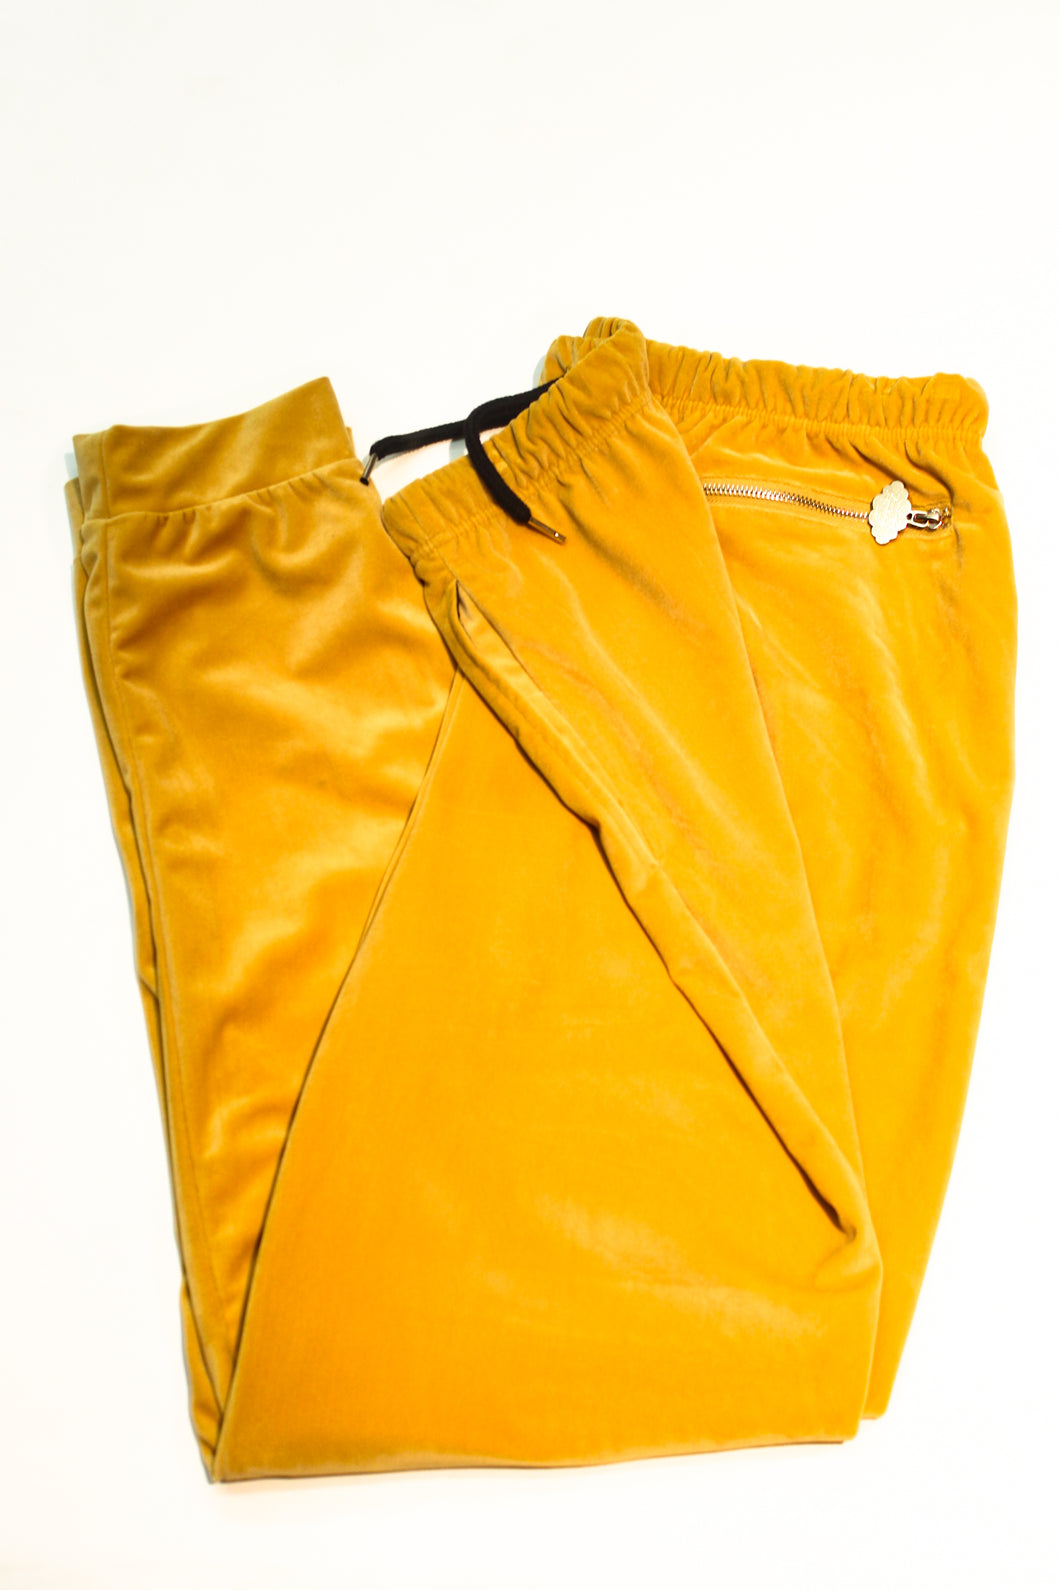 YAEZ Gold Coast Velour Pants - Super Massive Shop